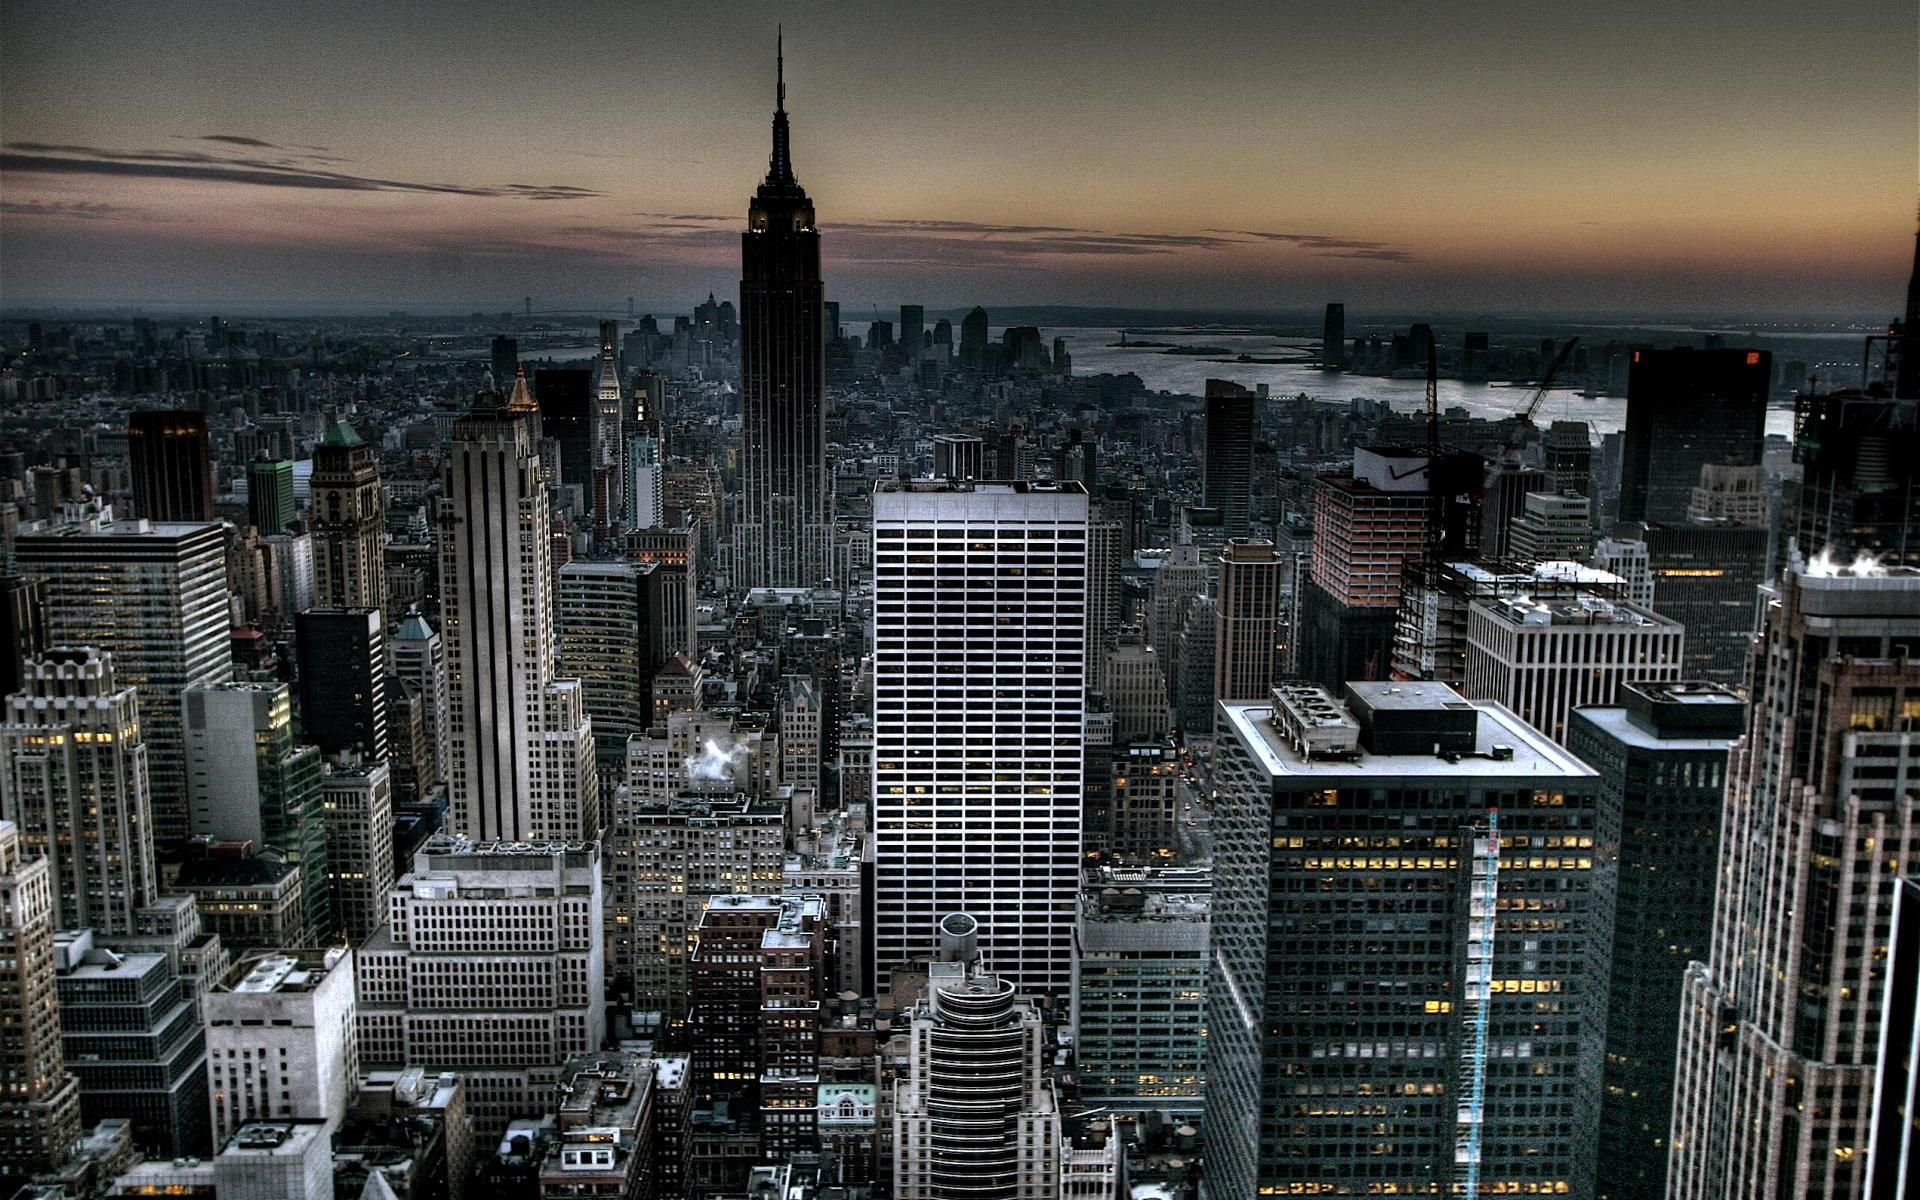 City Hd Wallpapers 1080p New York Wallpaper City Wallpaper